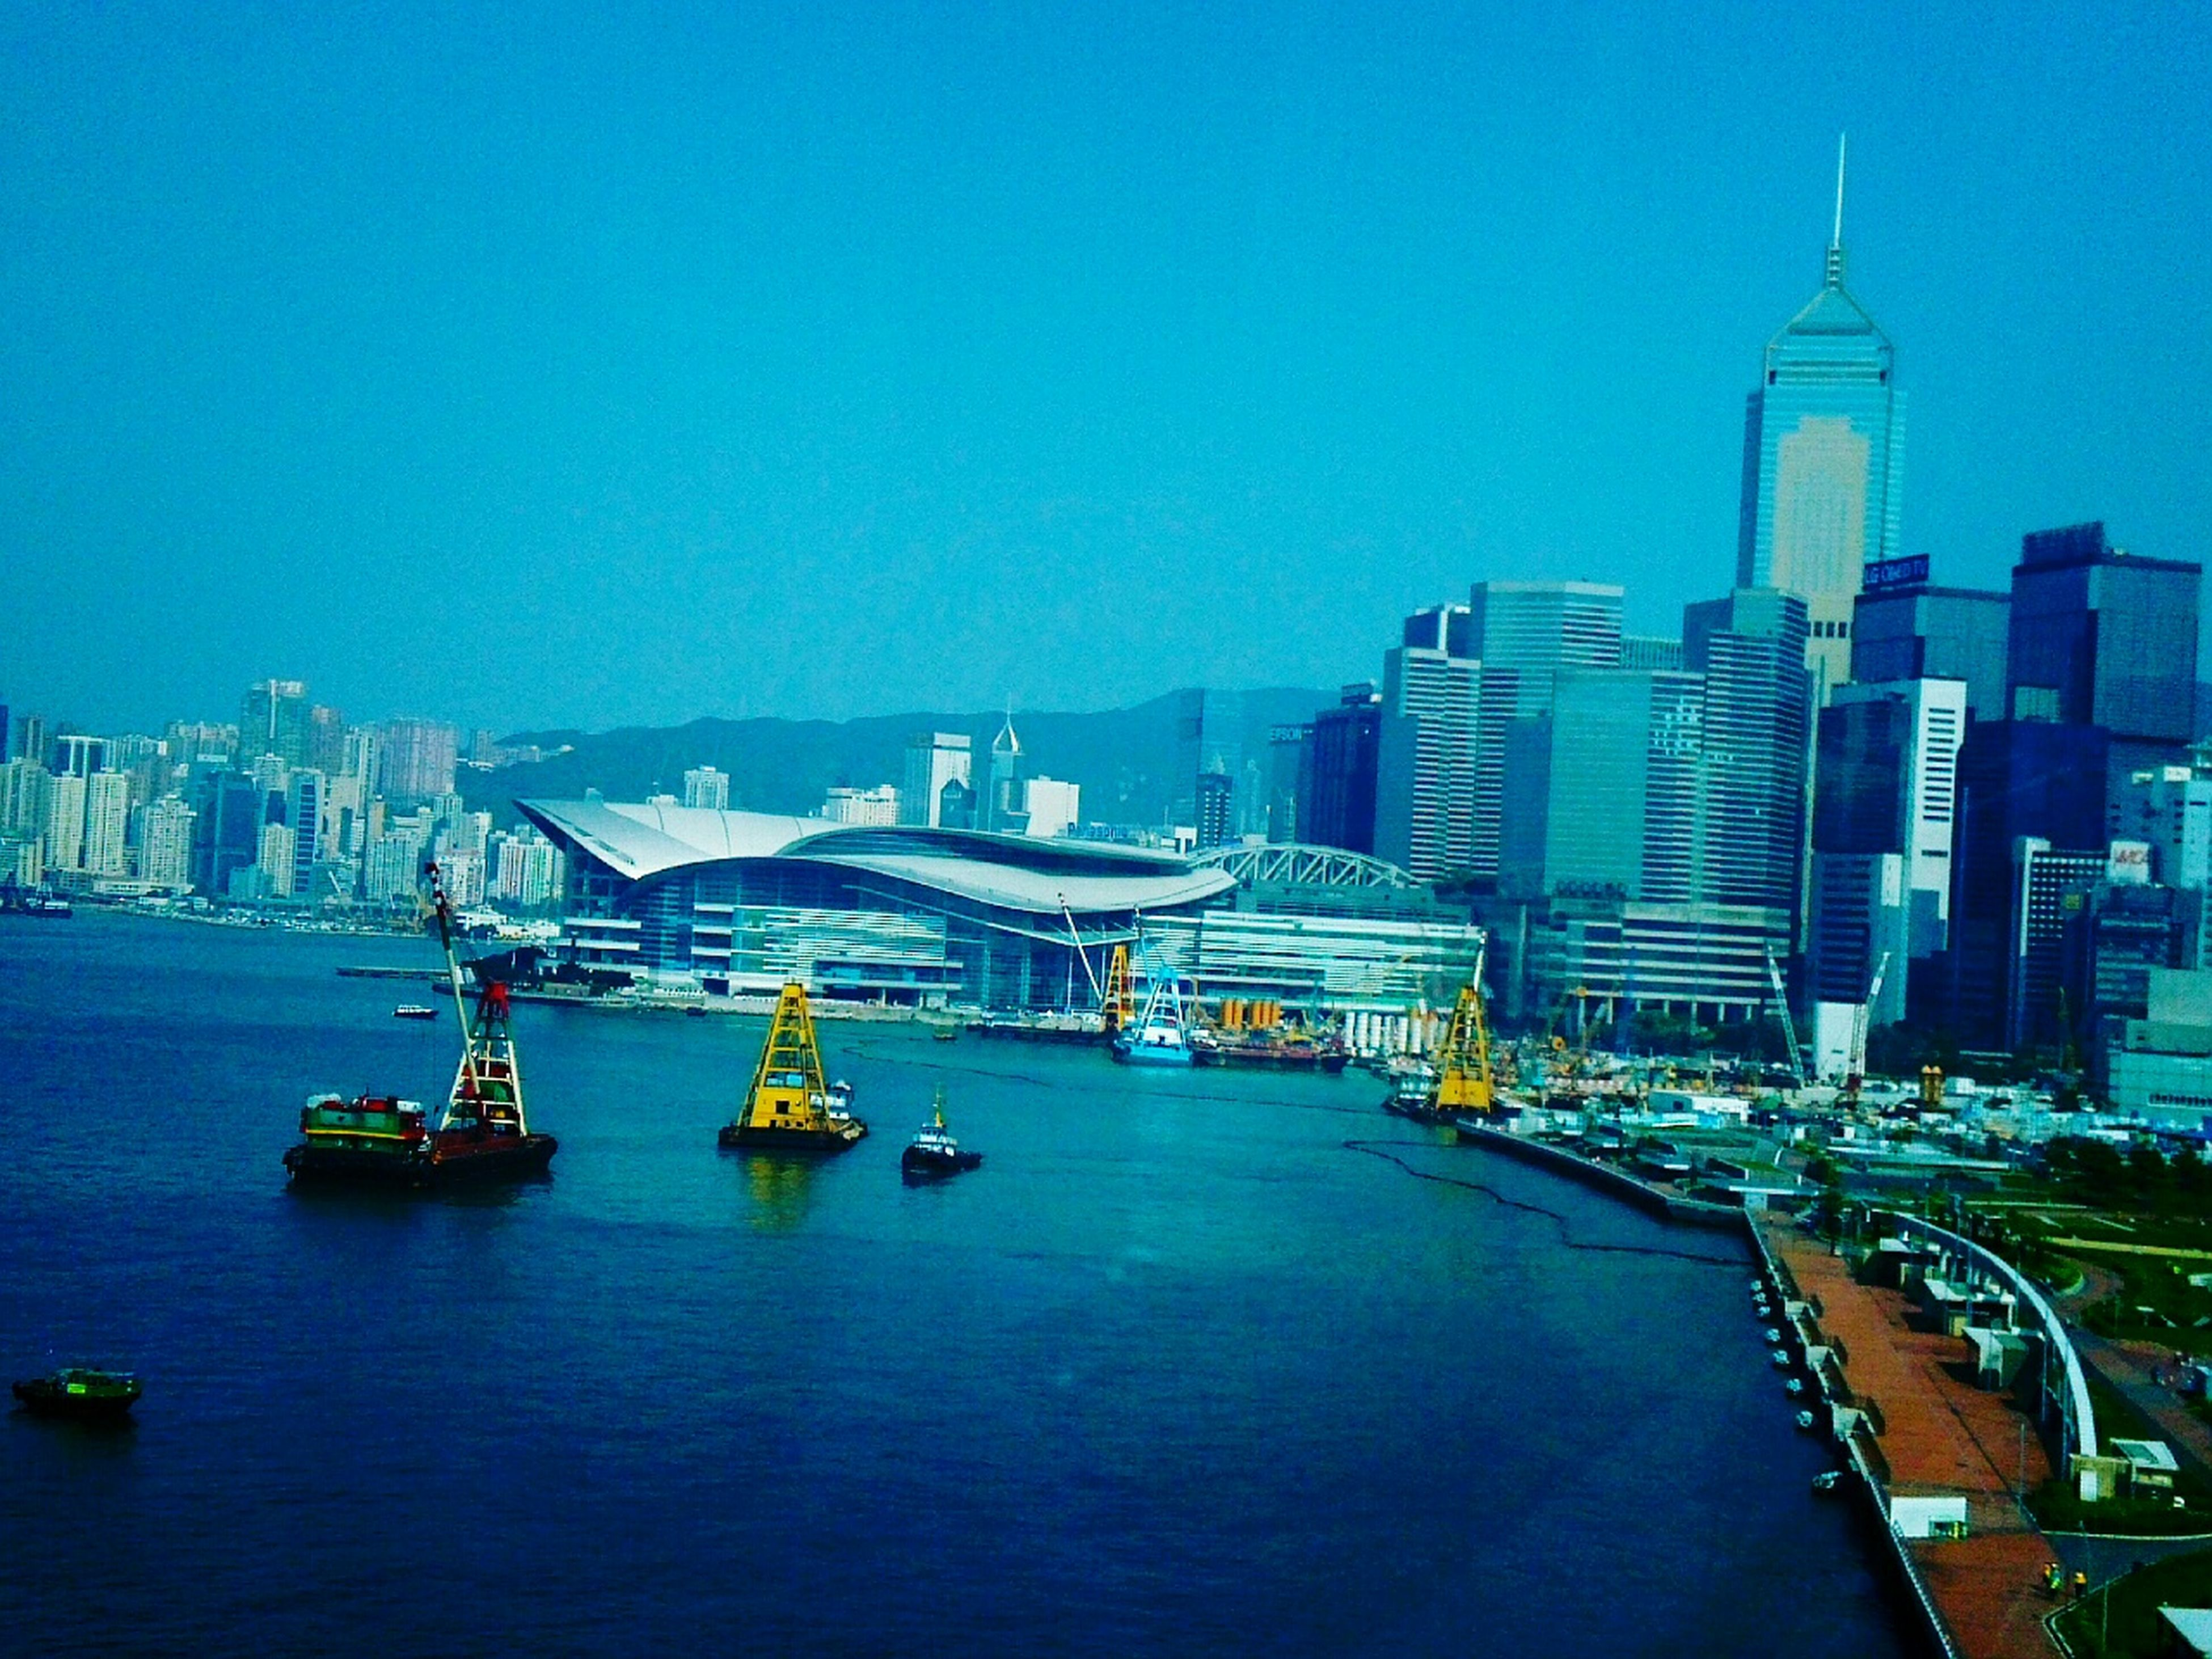 architecture, building exterior, built structure, city, water, cityscape, tower, clear sky, transportation, copy space, waterfront, skyscraper, tall - high, blue, river, nautical vessel, capital cities, travel destinations, travel, sea